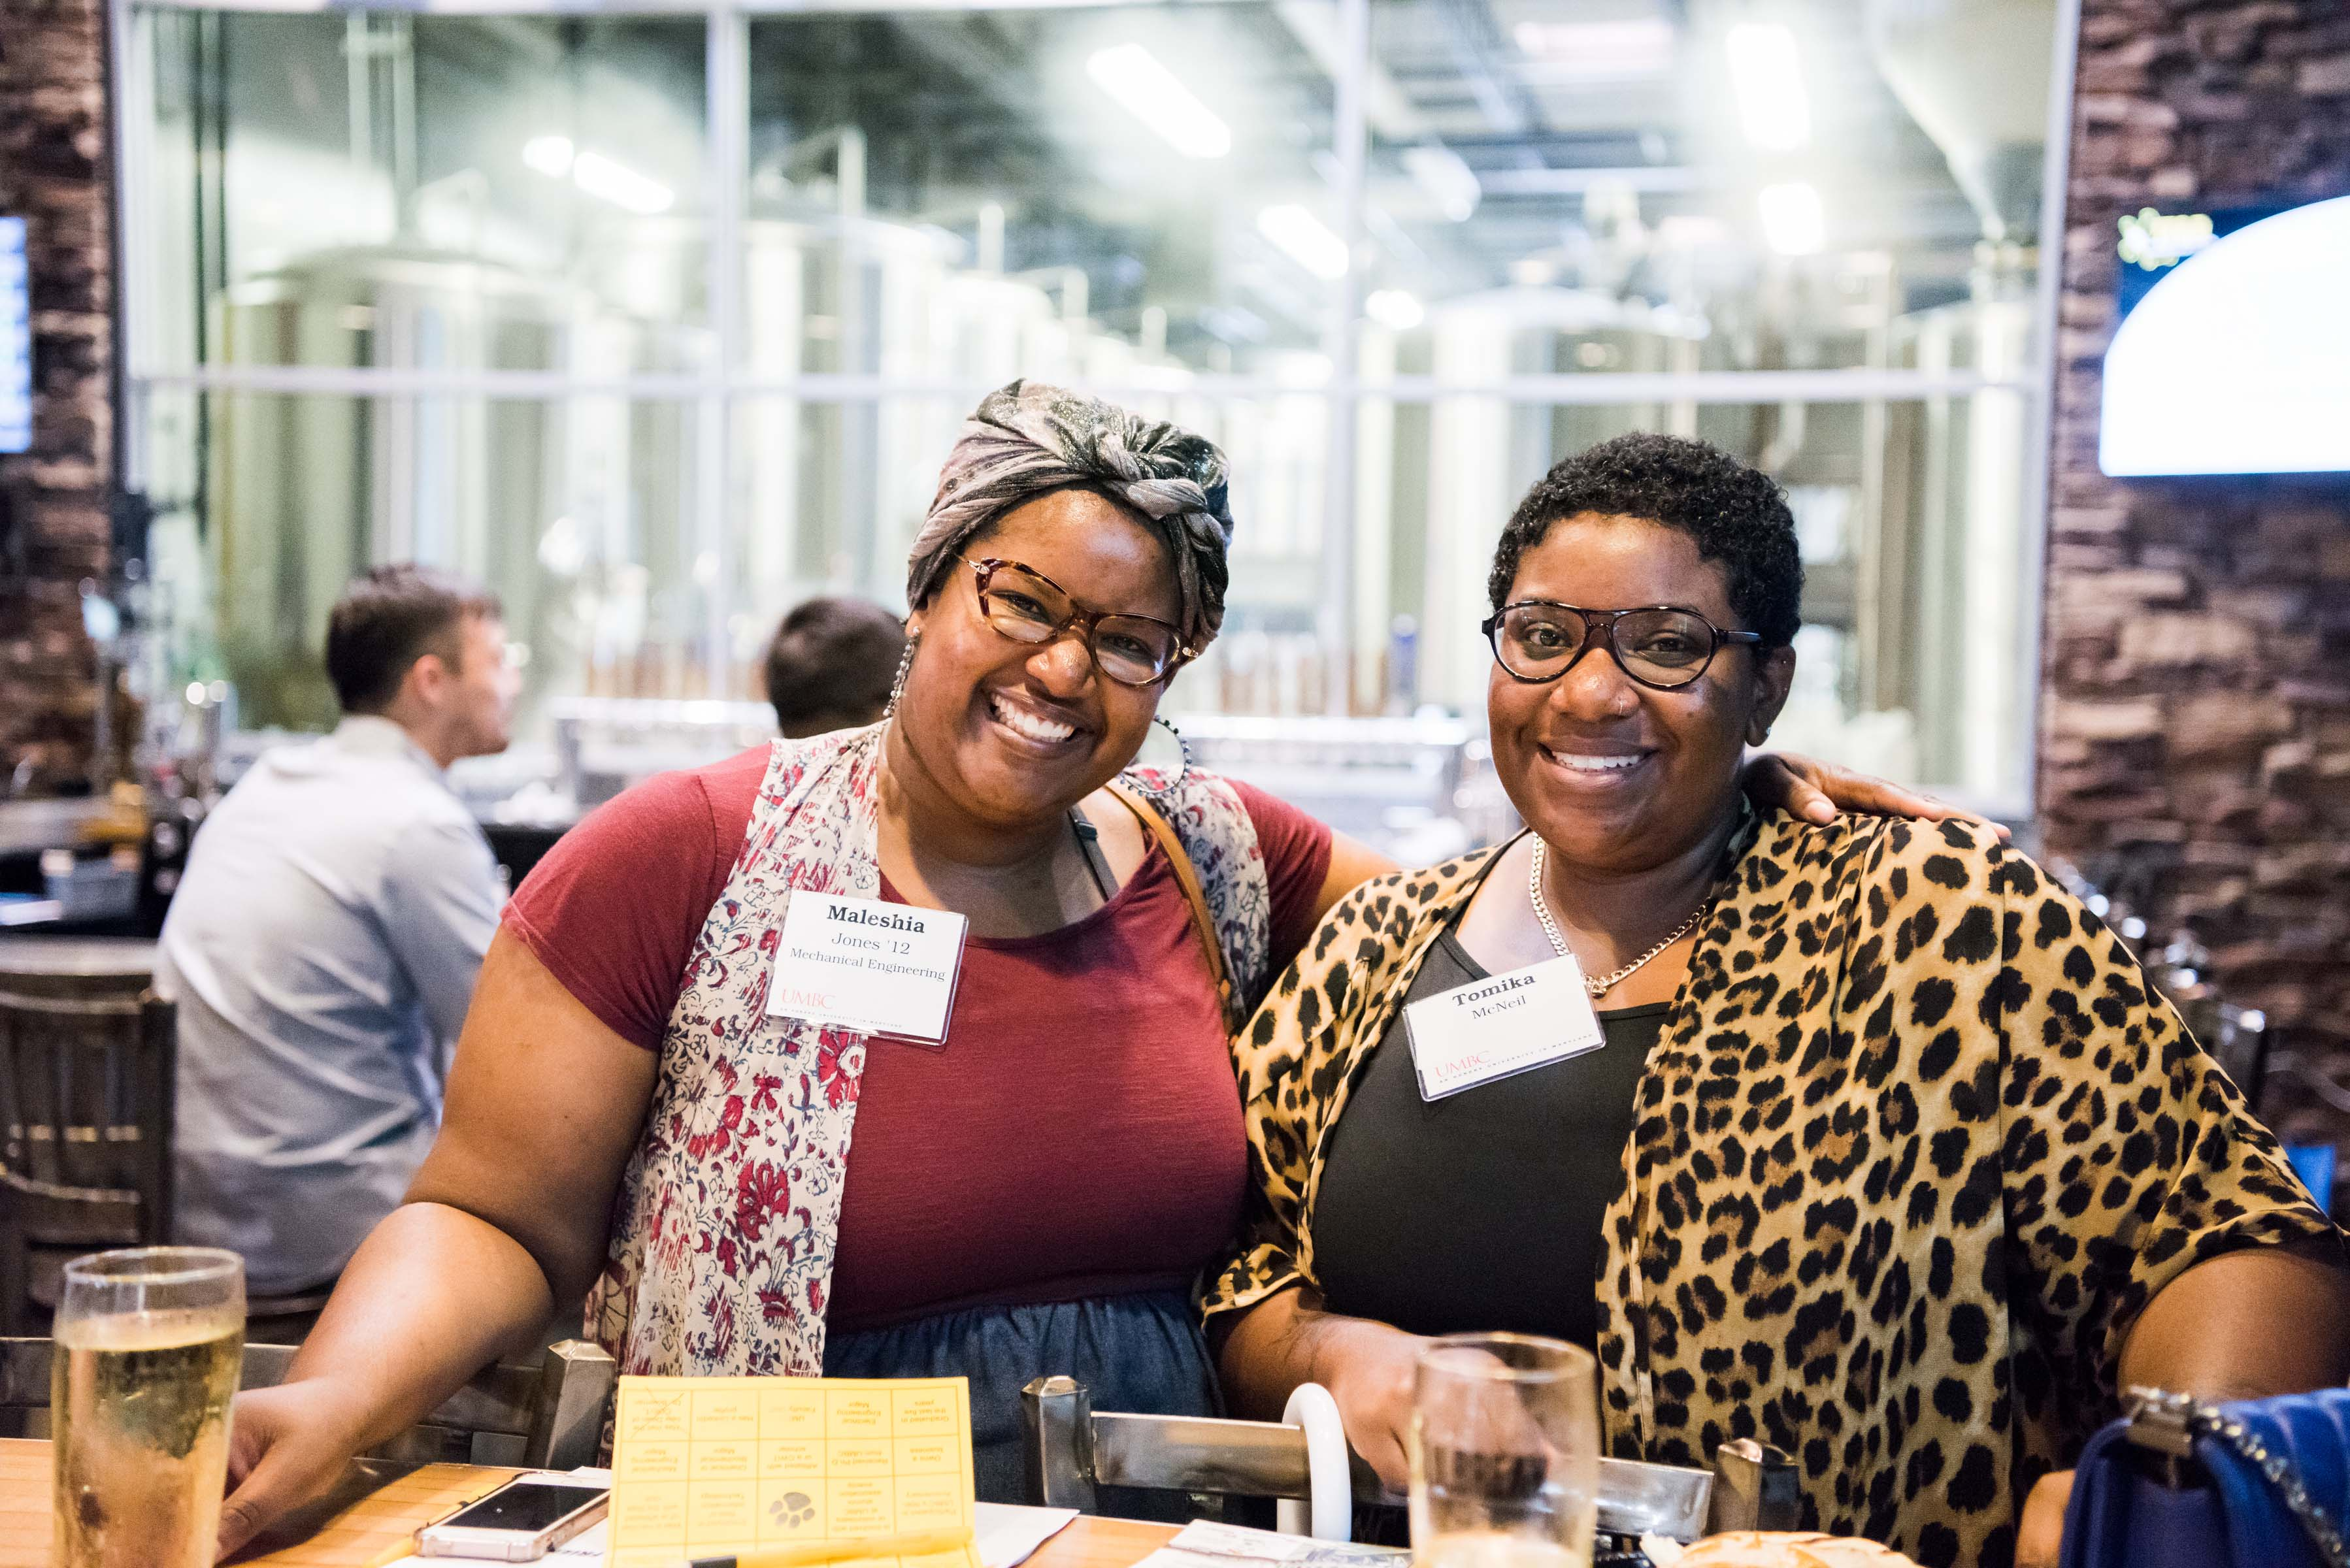 Two women in bold print and glasses smile together at ITE happy hour